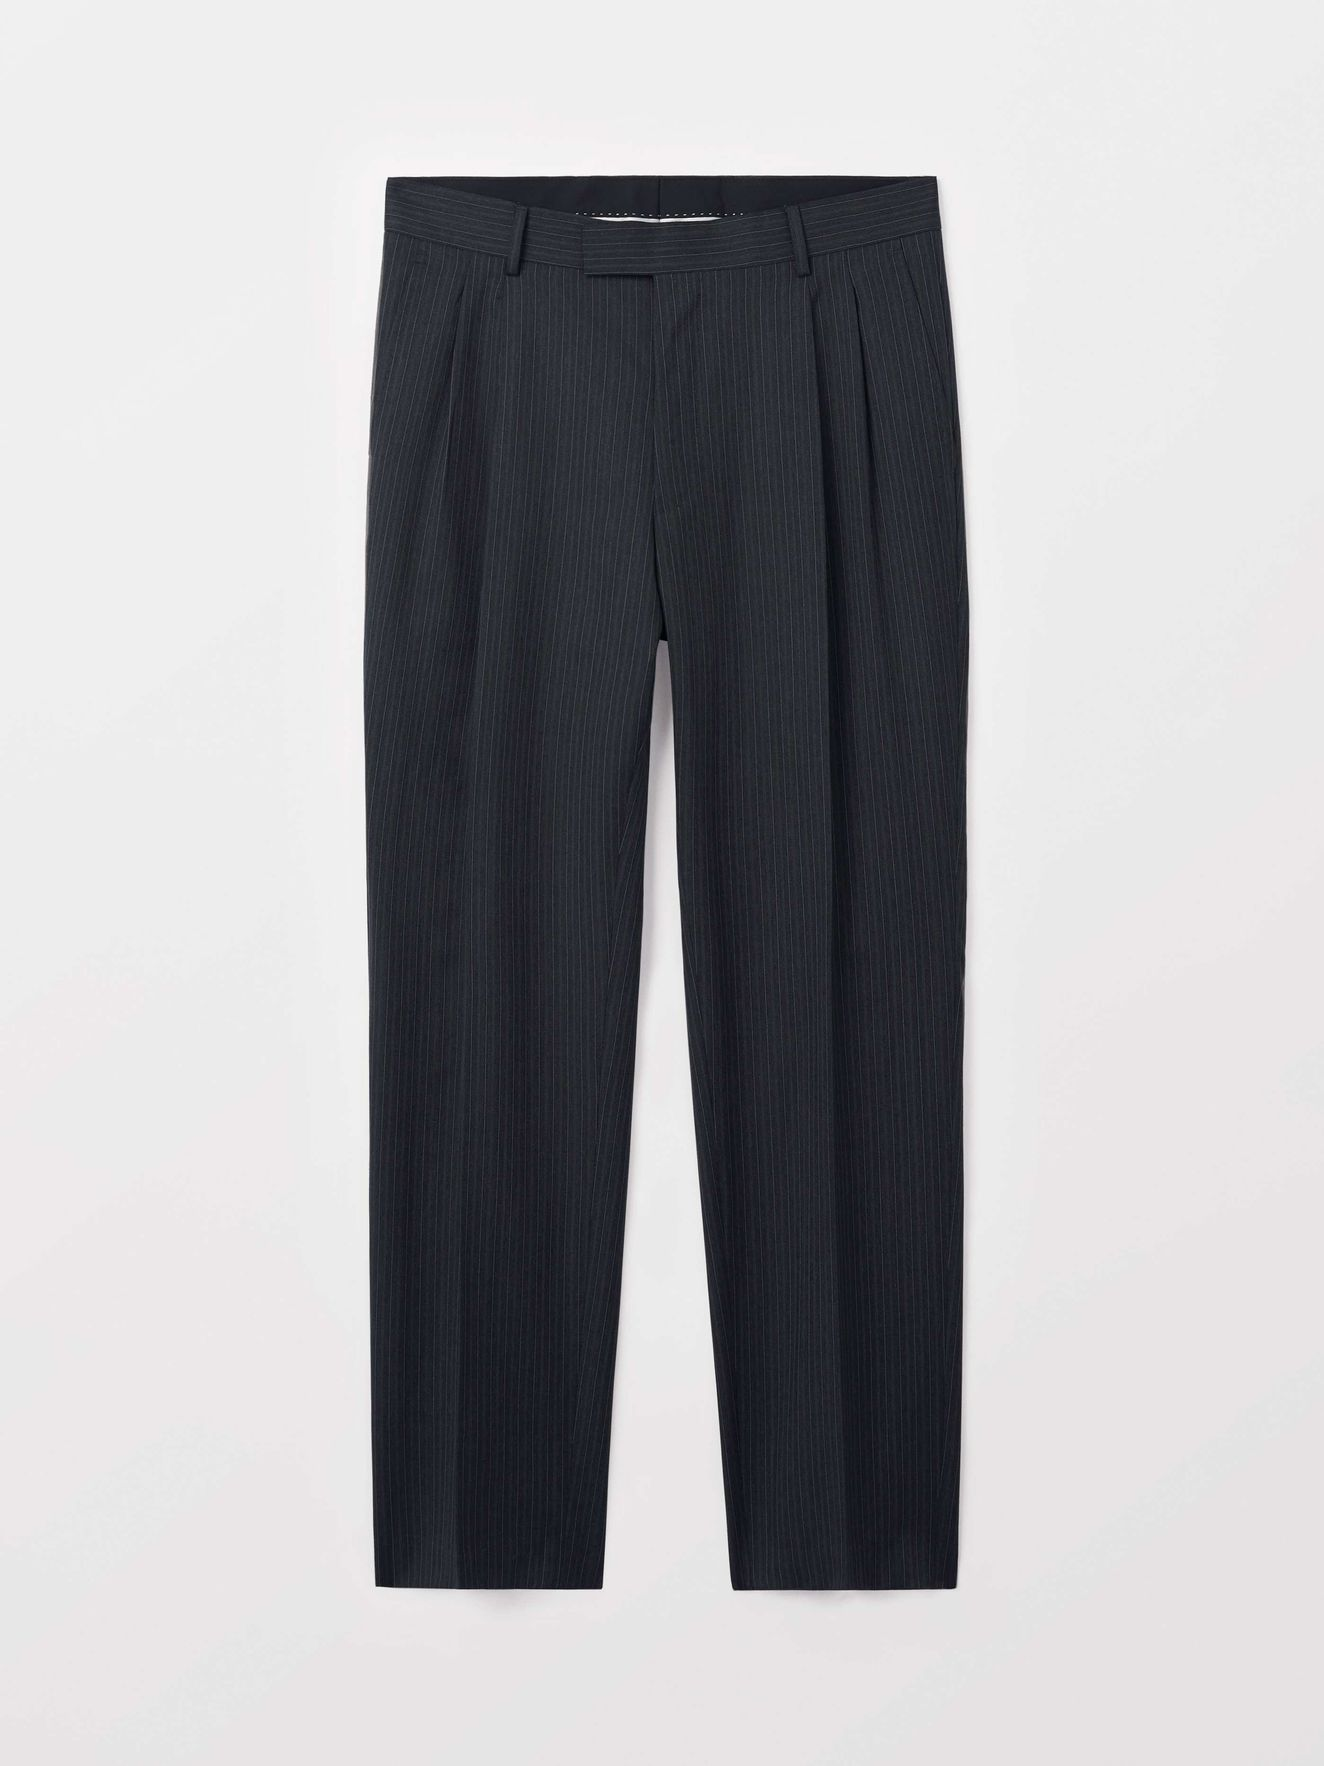 Tiger of Sweden SS18 Trousers